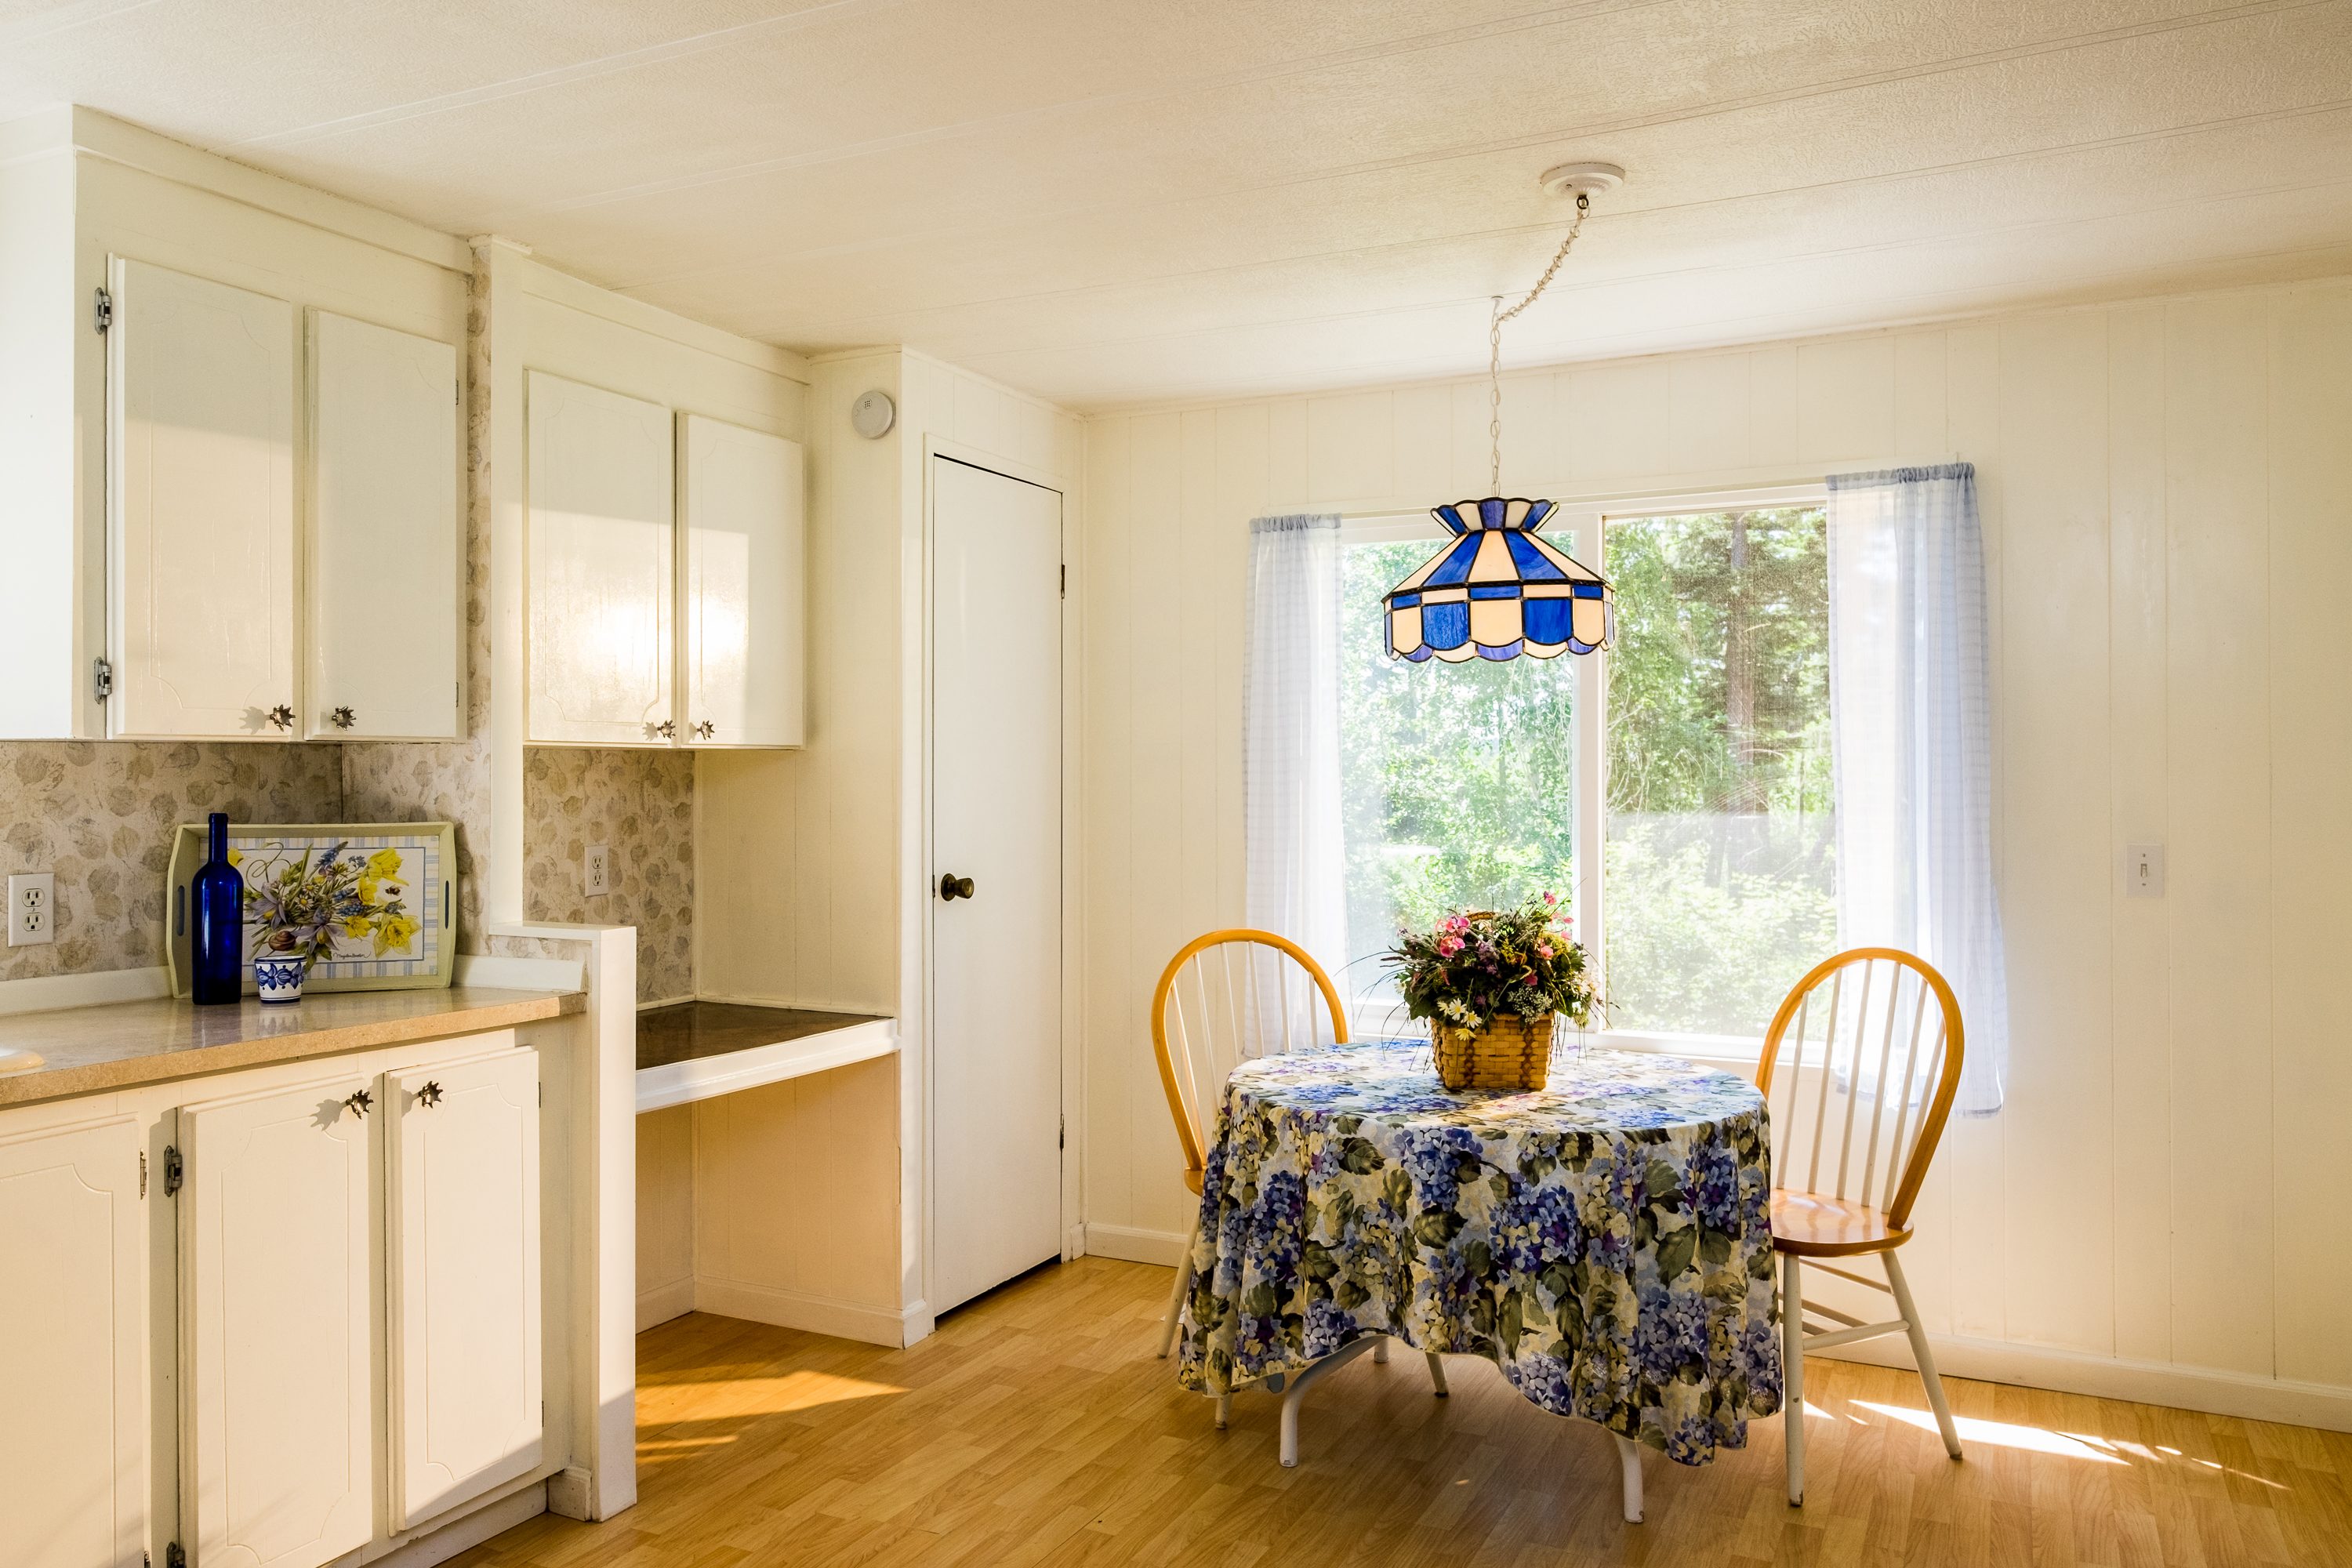 188 Tennis Ln - Lopez Island, Washington